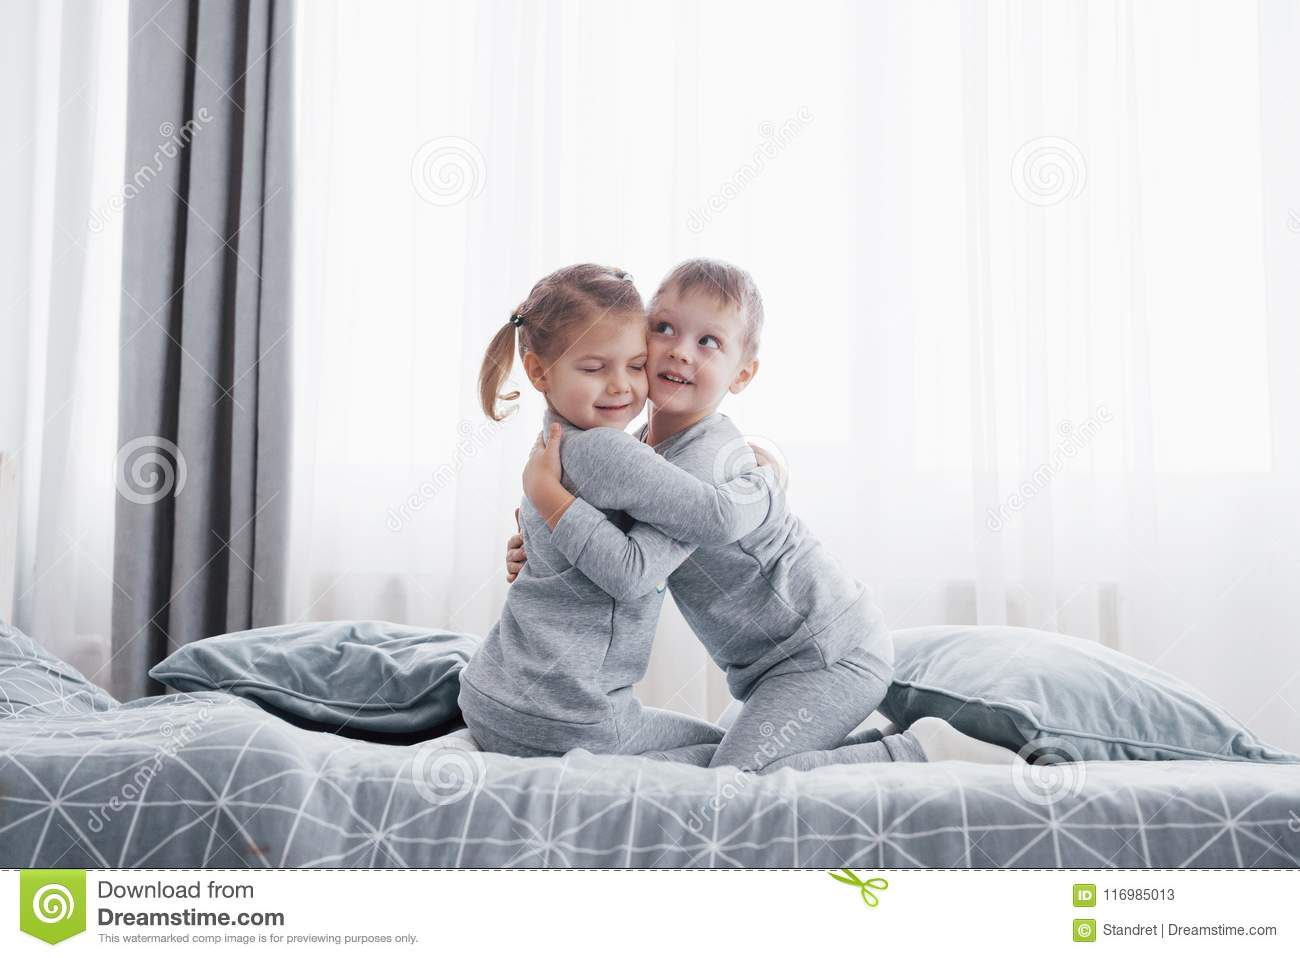 2ed612cfff Happy kids playing in white bedroom. Little boy and girl, brother and  sister play on the bed wearing pajamas. Nursery interior for children.